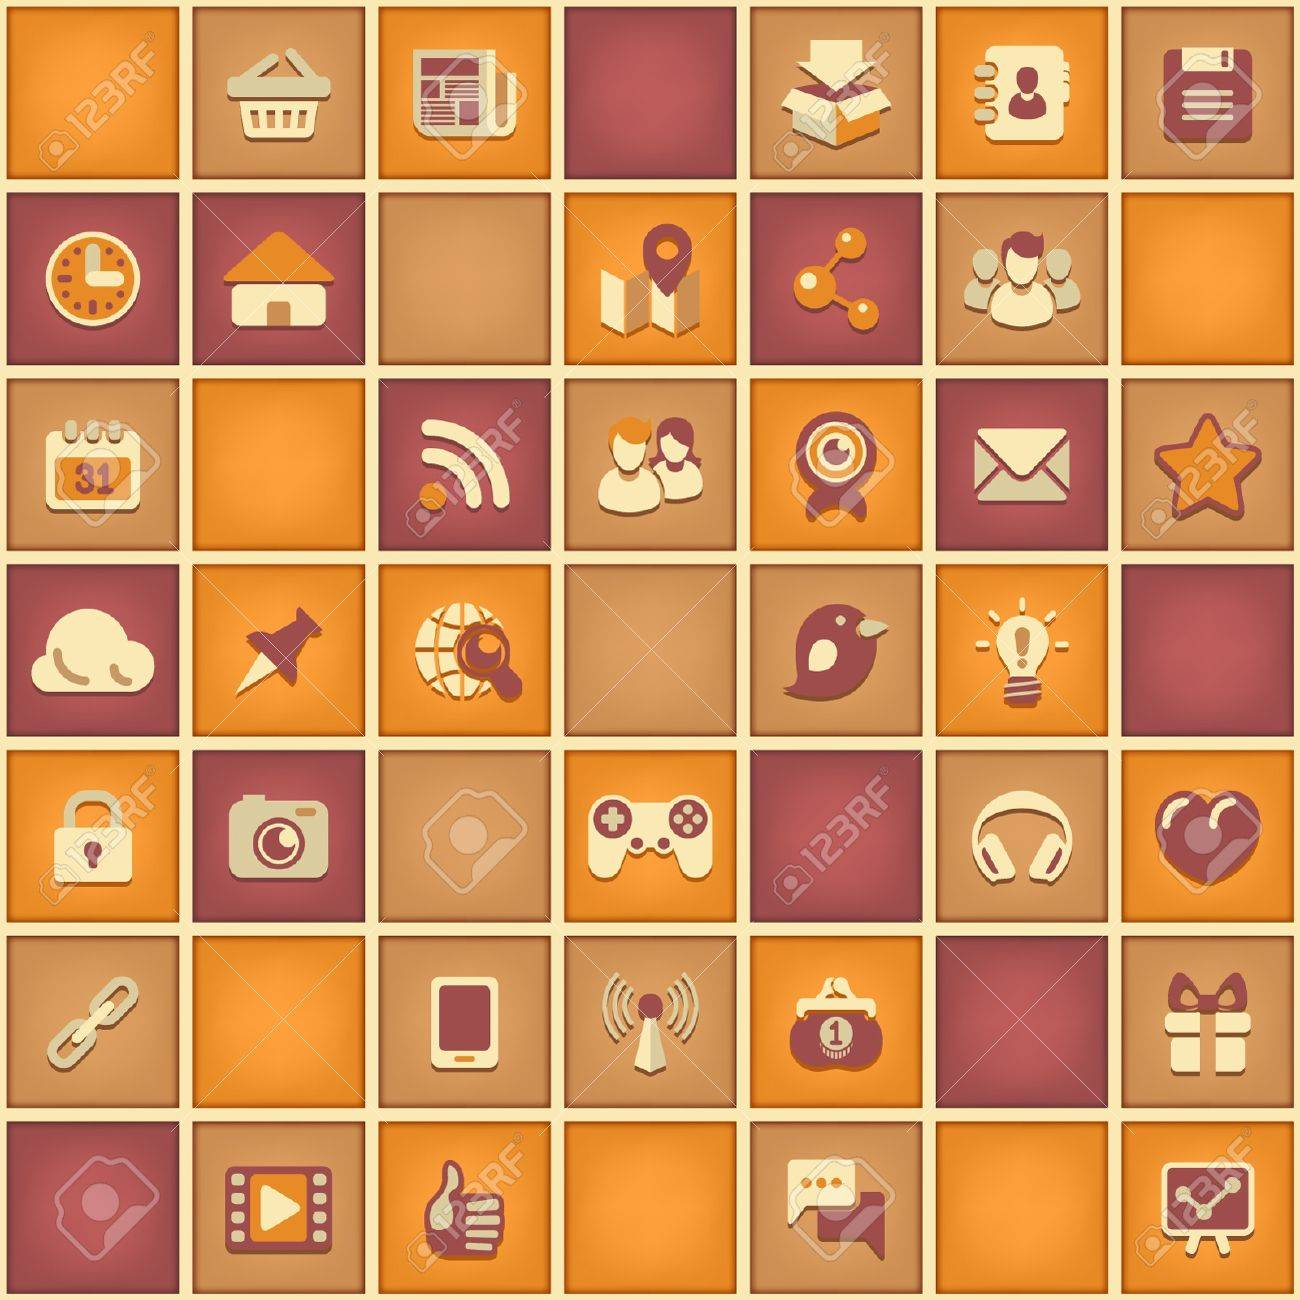 Seamless square pattern of social networking signs in bright retro colors Stock Vector - 21999533